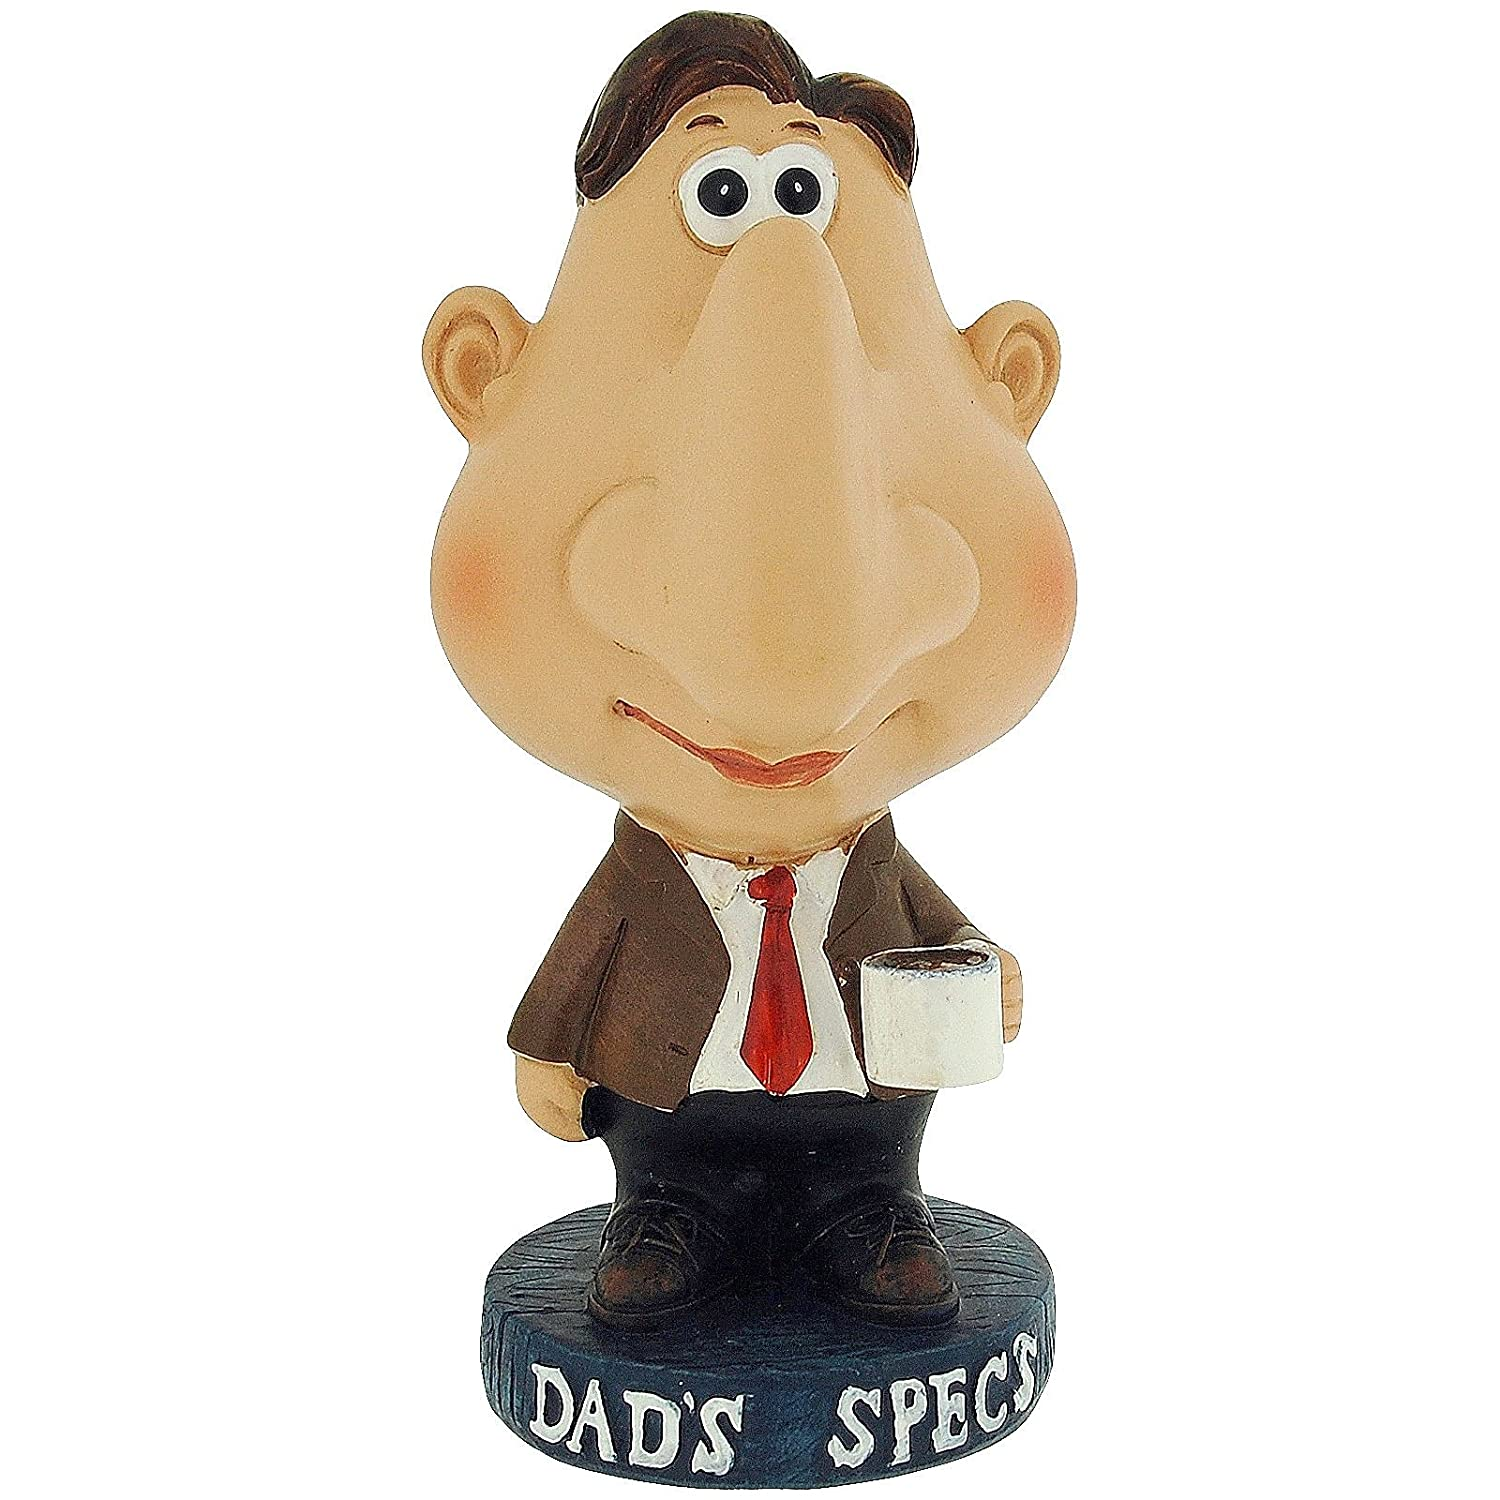 SHJ Comic Novelty Special Dad Specs/Eyeglass Holder Ornament SC851 by The Olivia Collection Joe Davies